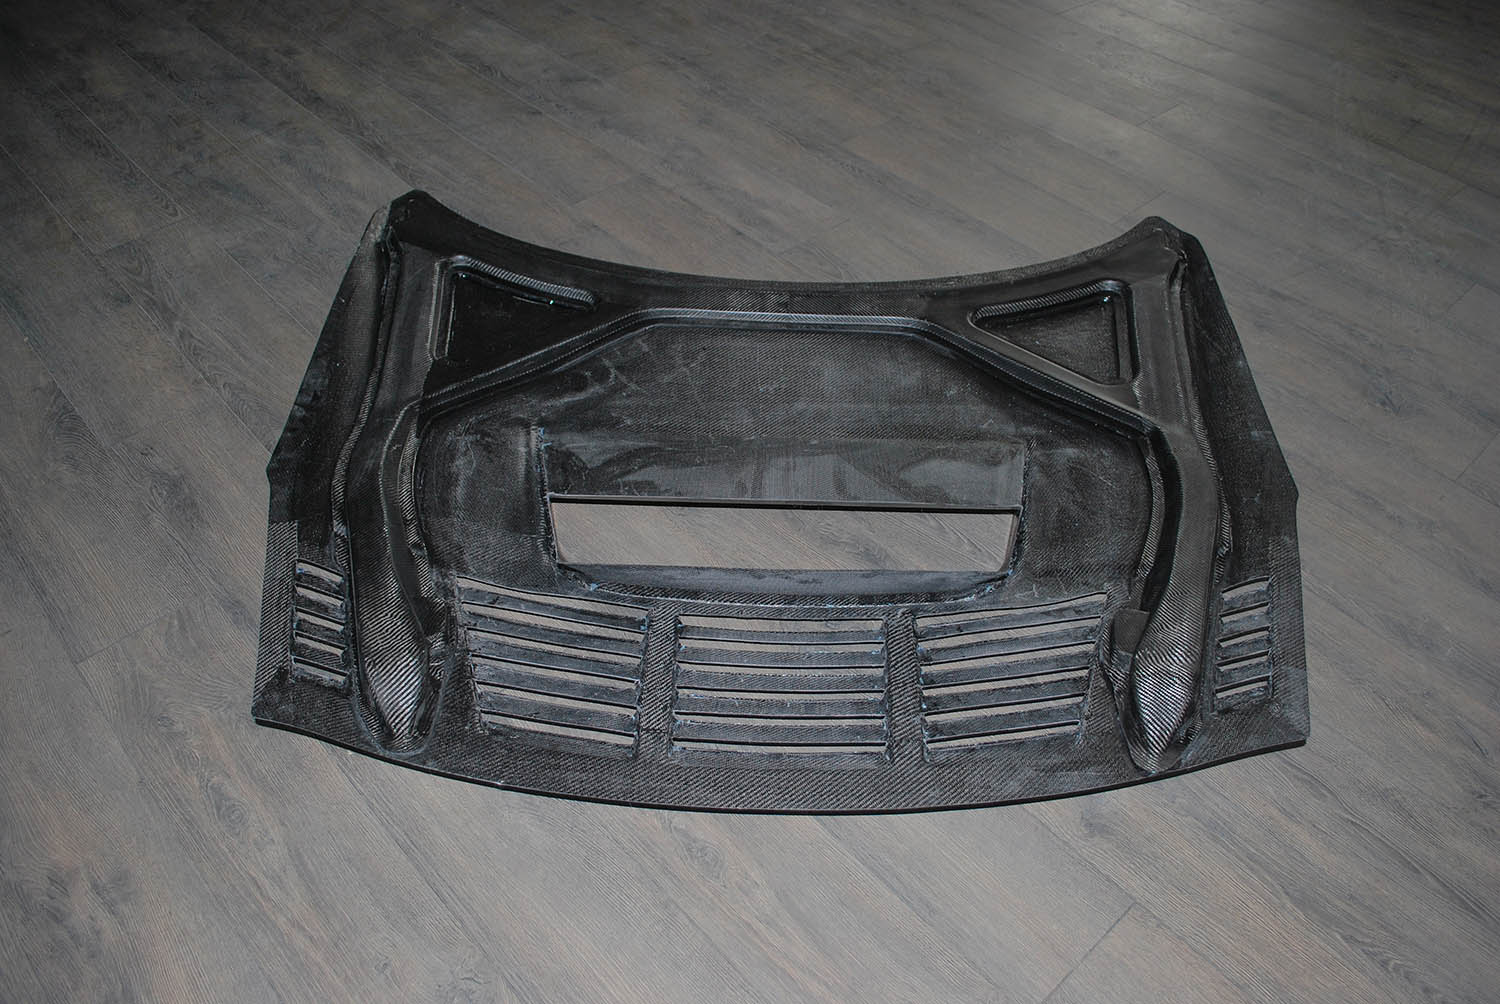 GTR R35 Vented Bonnet Inside